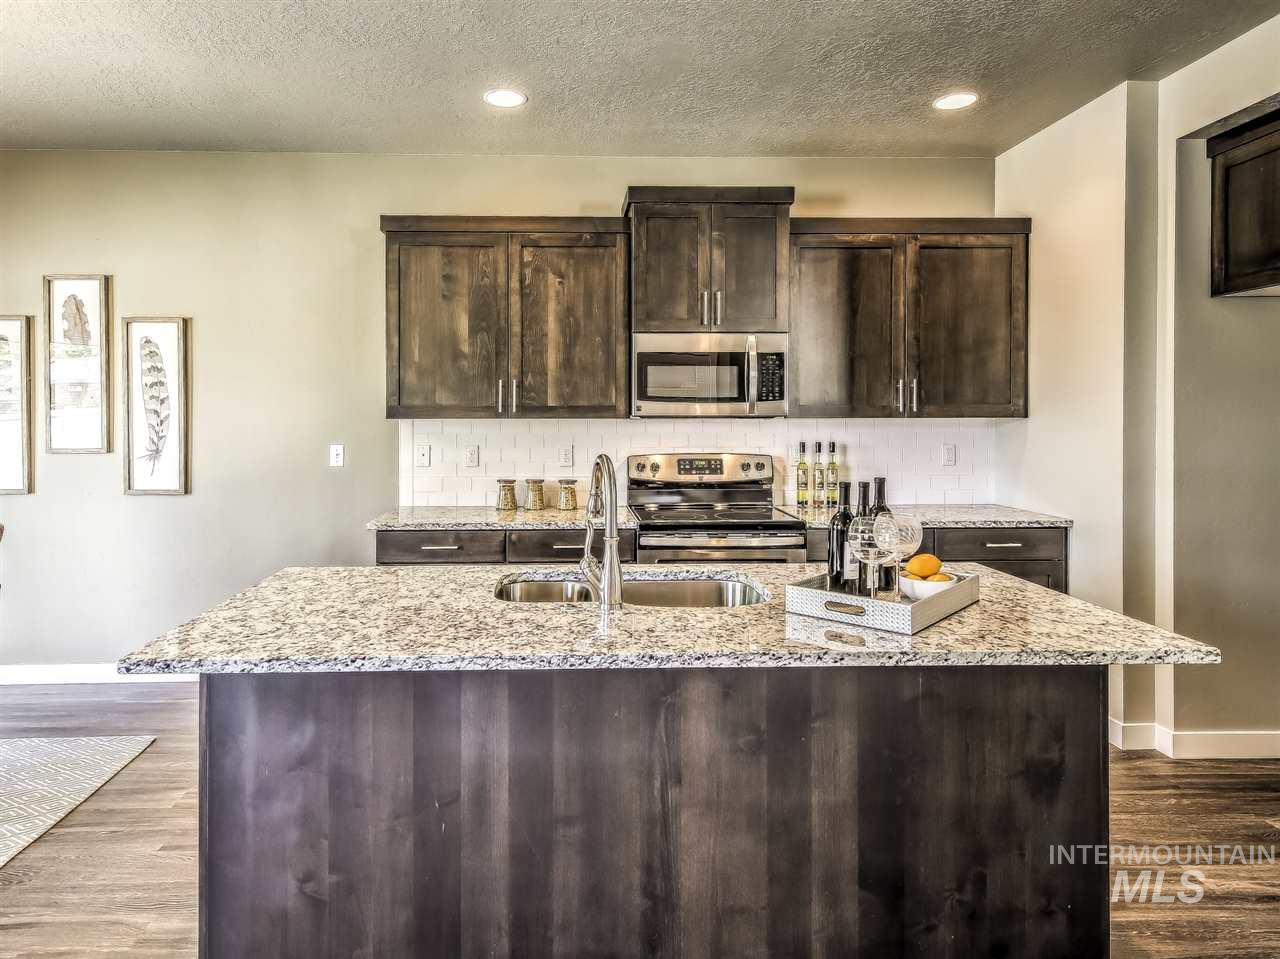 "Sedona | Blackrock Homes. Completion date is 08/12/19. Dark stained kitchen cabinets, granite counters, Brushed Nickel Hardware & Fixtures. Built-in bench & cubbies, custom cabinets w/ full tile backsplash, SS appliances & secret ""mouse hole."" Large master suite upstairs w/ dual vanity + 3 more bdrms & a loft that flexes as 2nd TV area. Dual vanity at main bathroom. USE MLS DIRECTIONS TO LOCATE PROPERTY, DO NOT GPS.  Pics and tour similar. LANDSCAPE MAINTAINED BY HOA, NO MOWING!!"